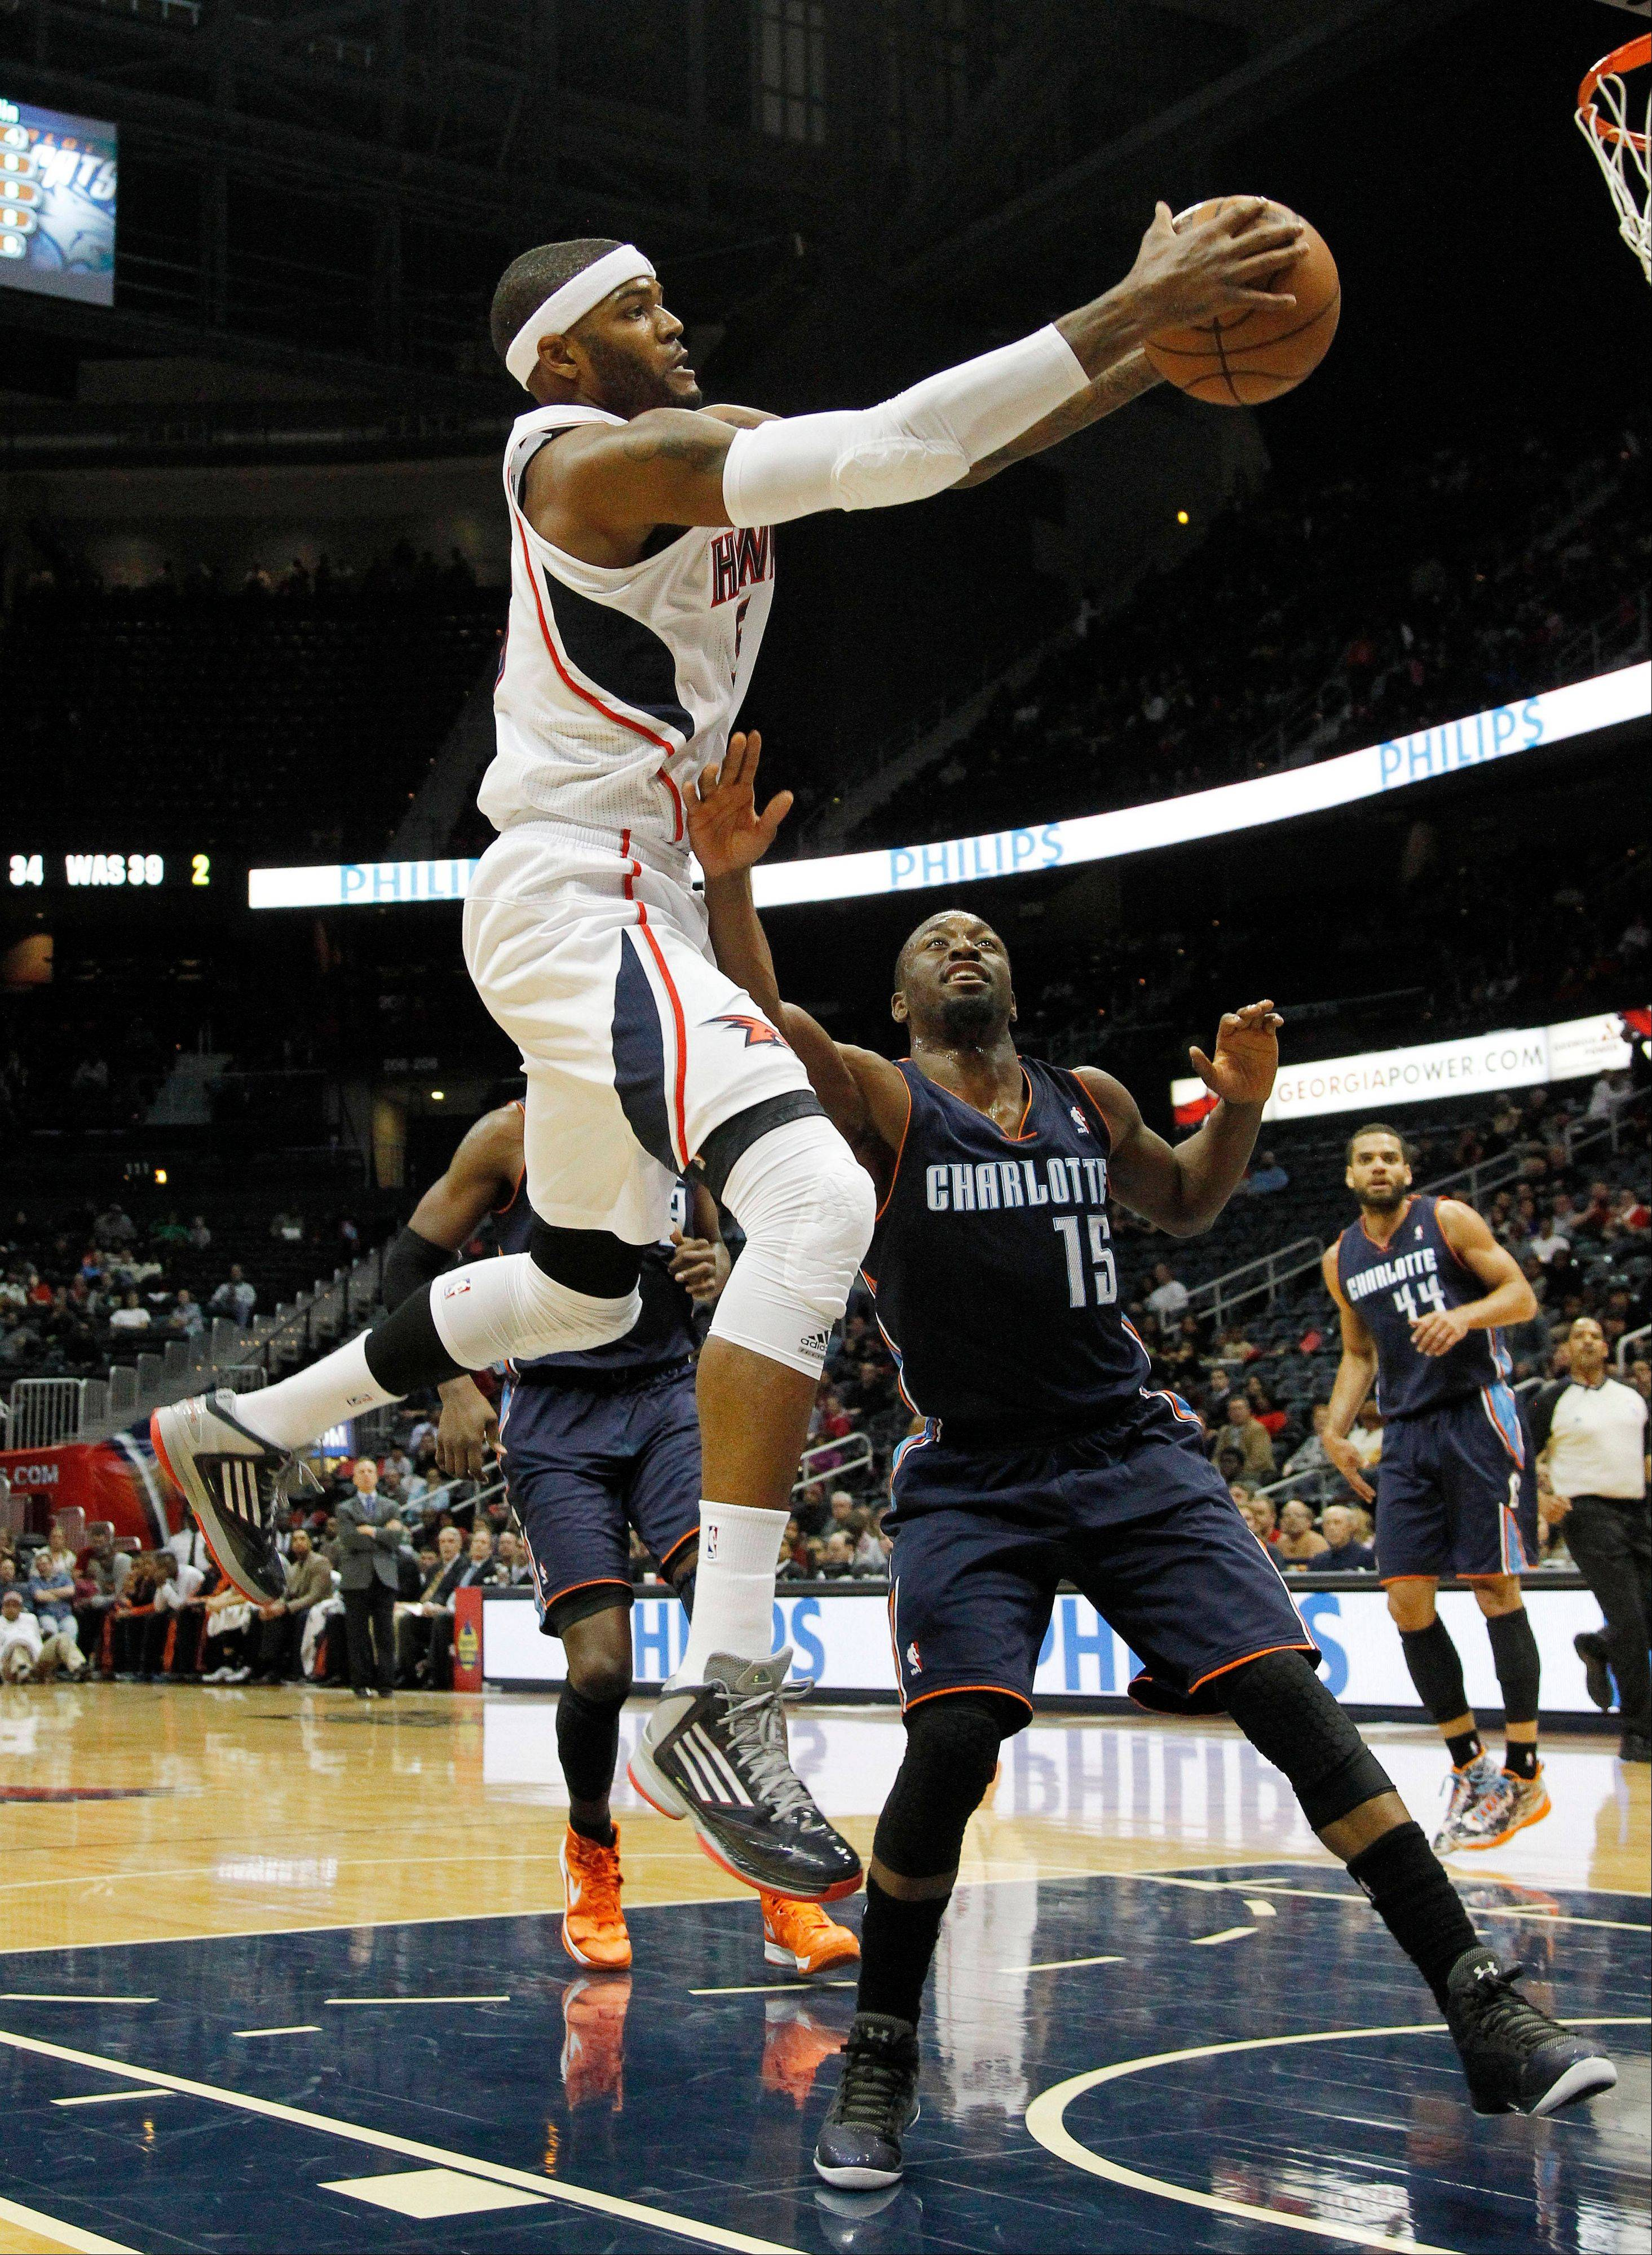 Atlanta Hawks forward Josh Smith goes to the basket as Charlotte Bobcats guard Kemba Walker defends Wednesday during the first half in Atlanta.